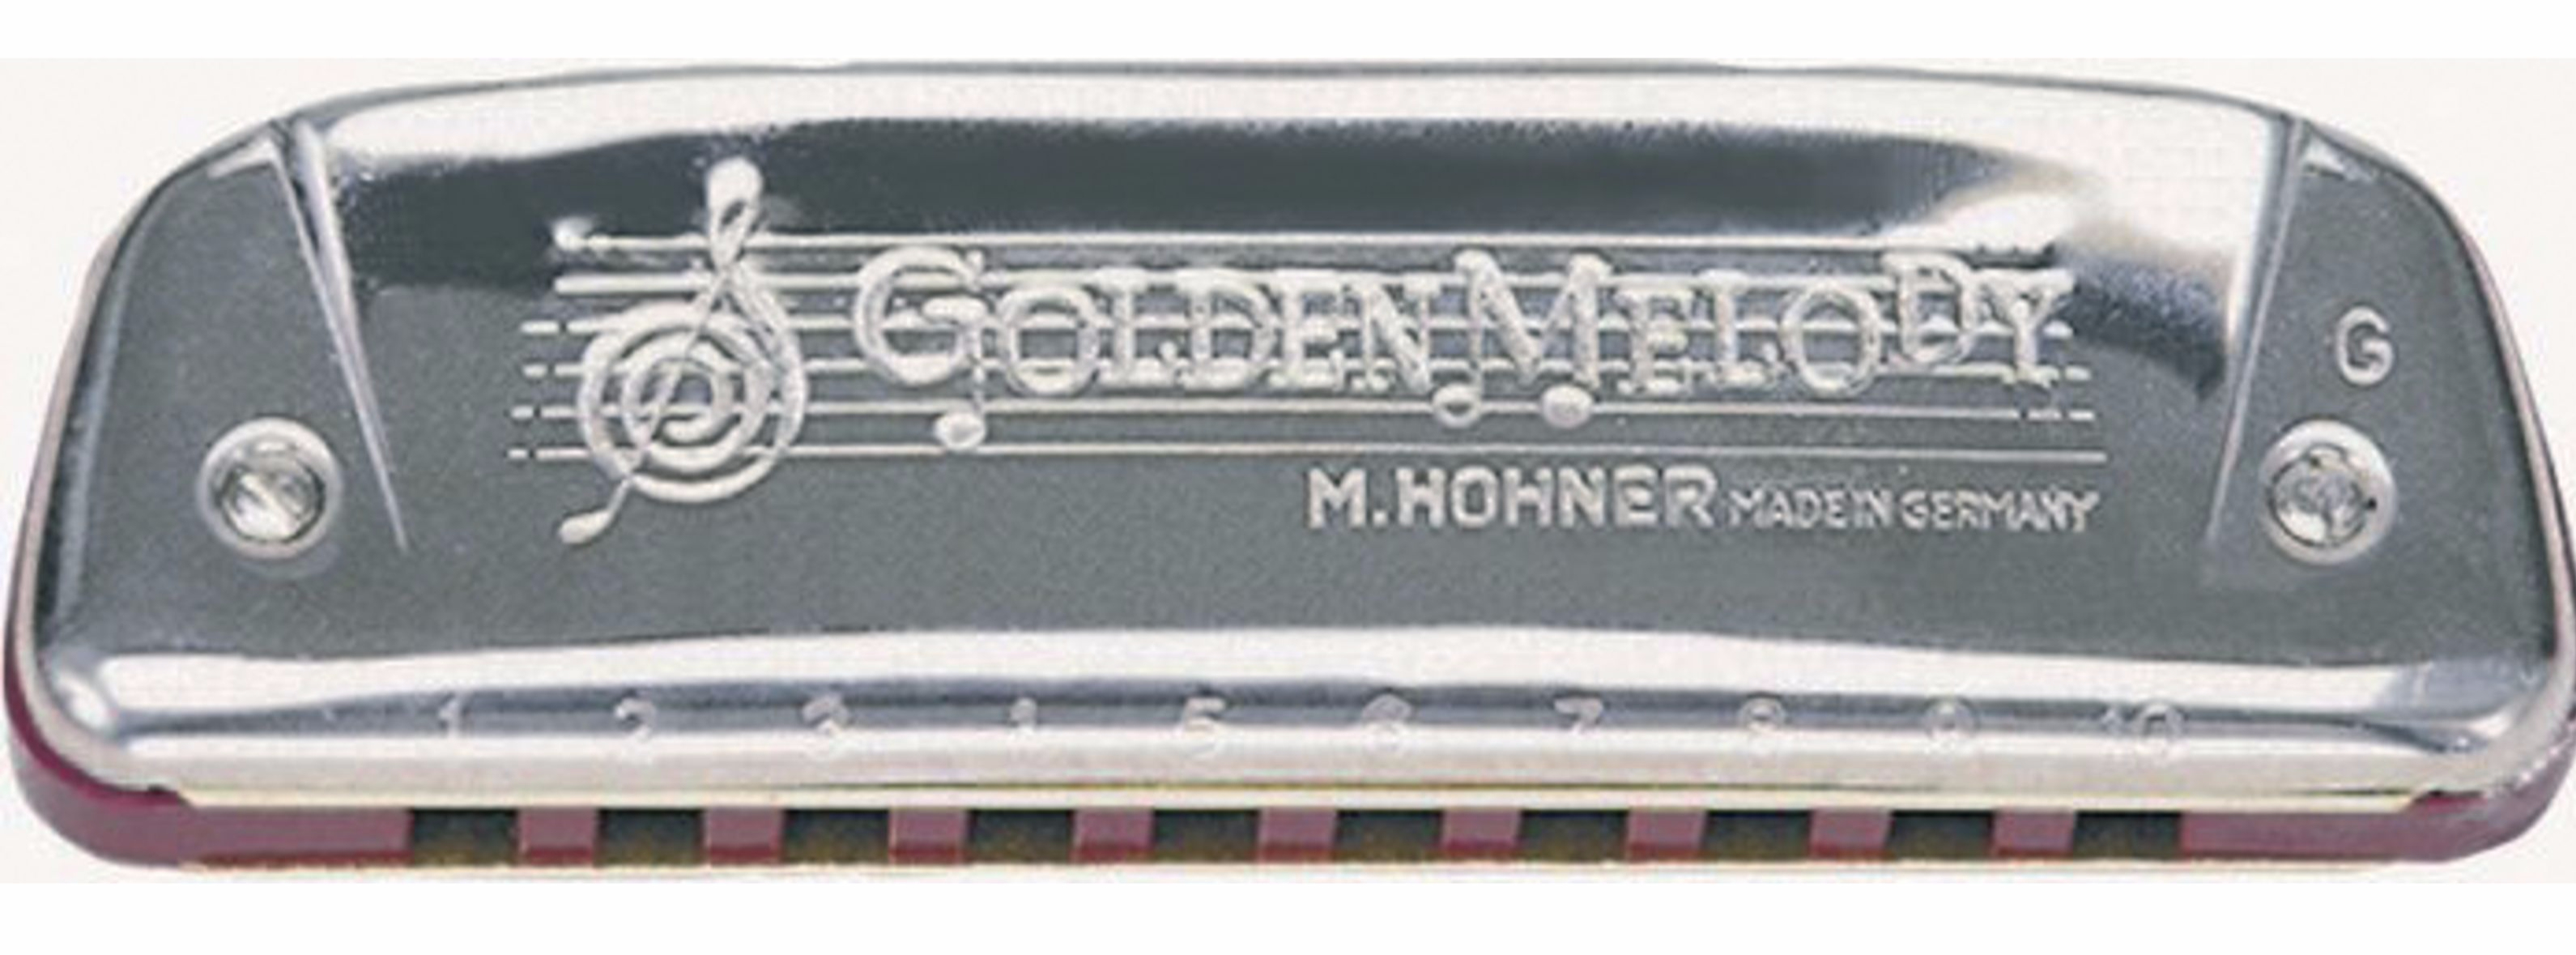 HOHNER Golden Melodie F